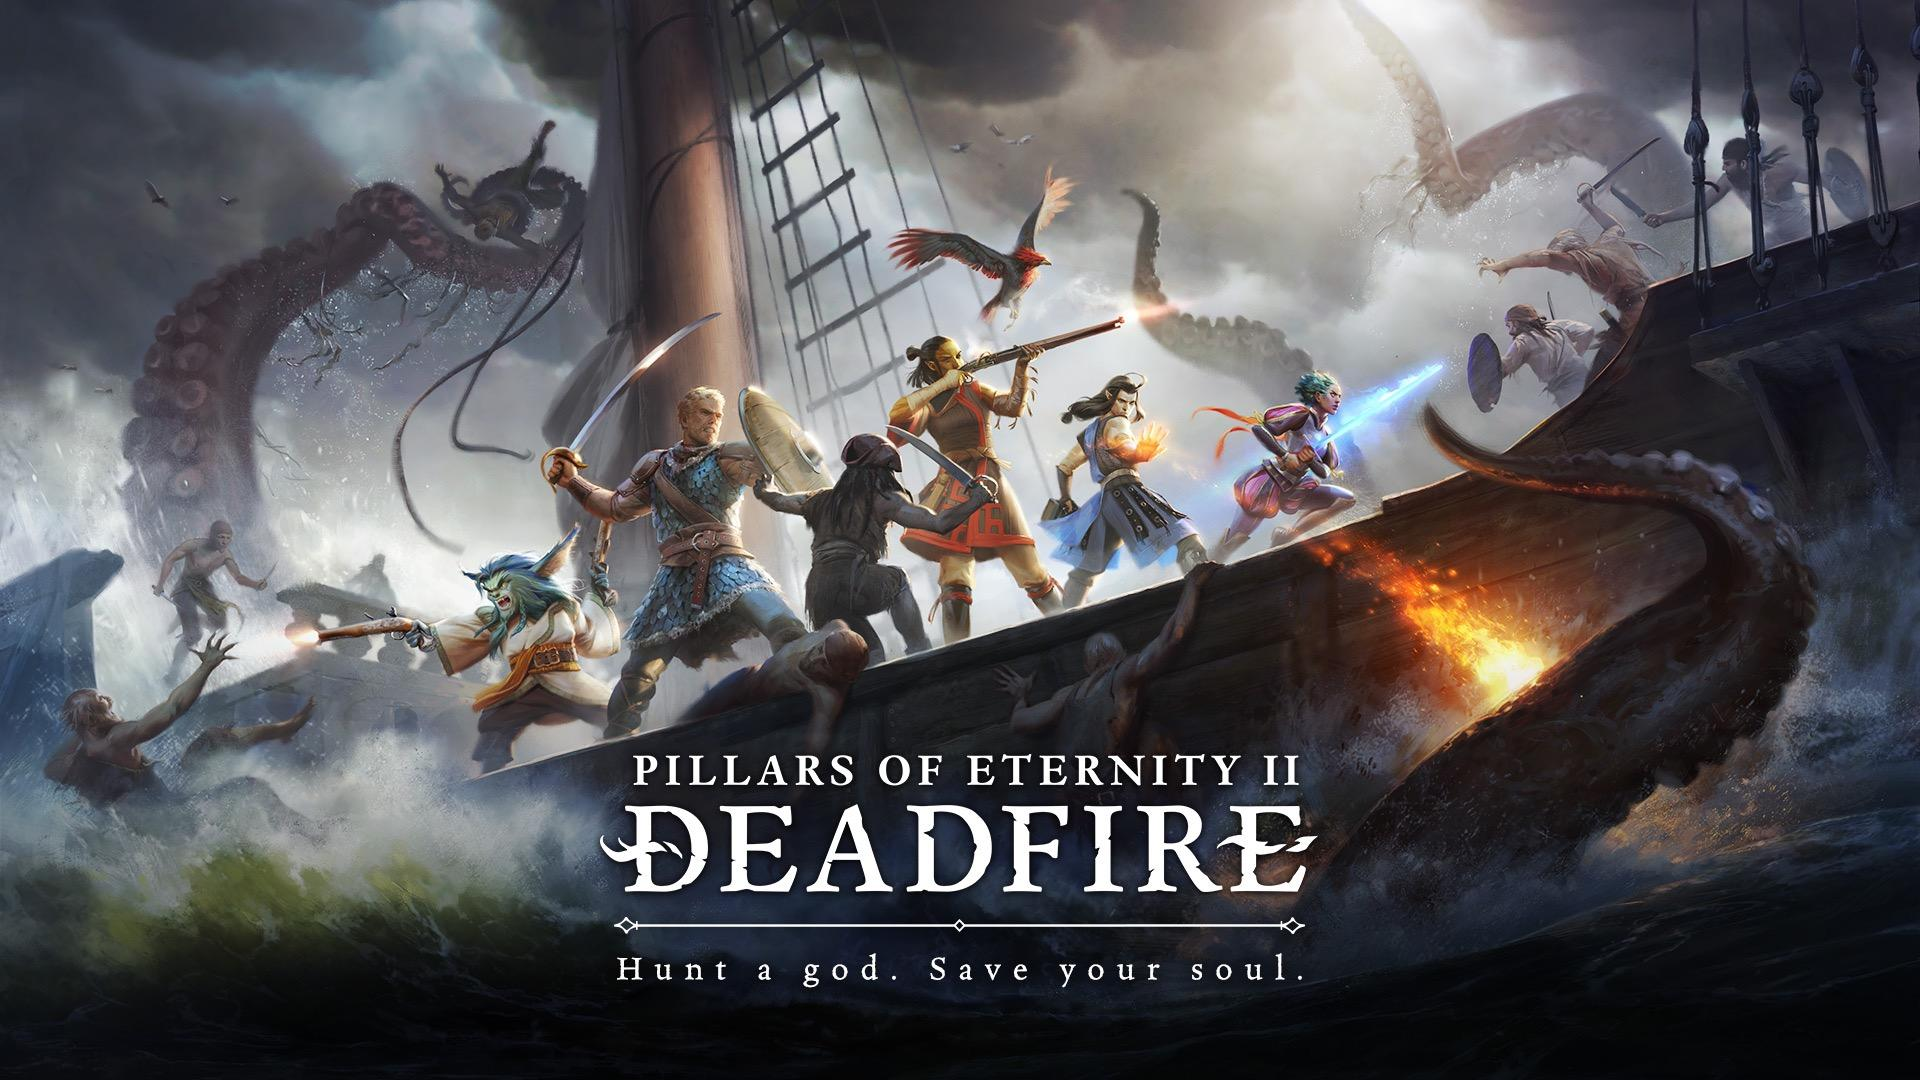 Pillars of Eternity 2: Deadfire console release due holiday 2018